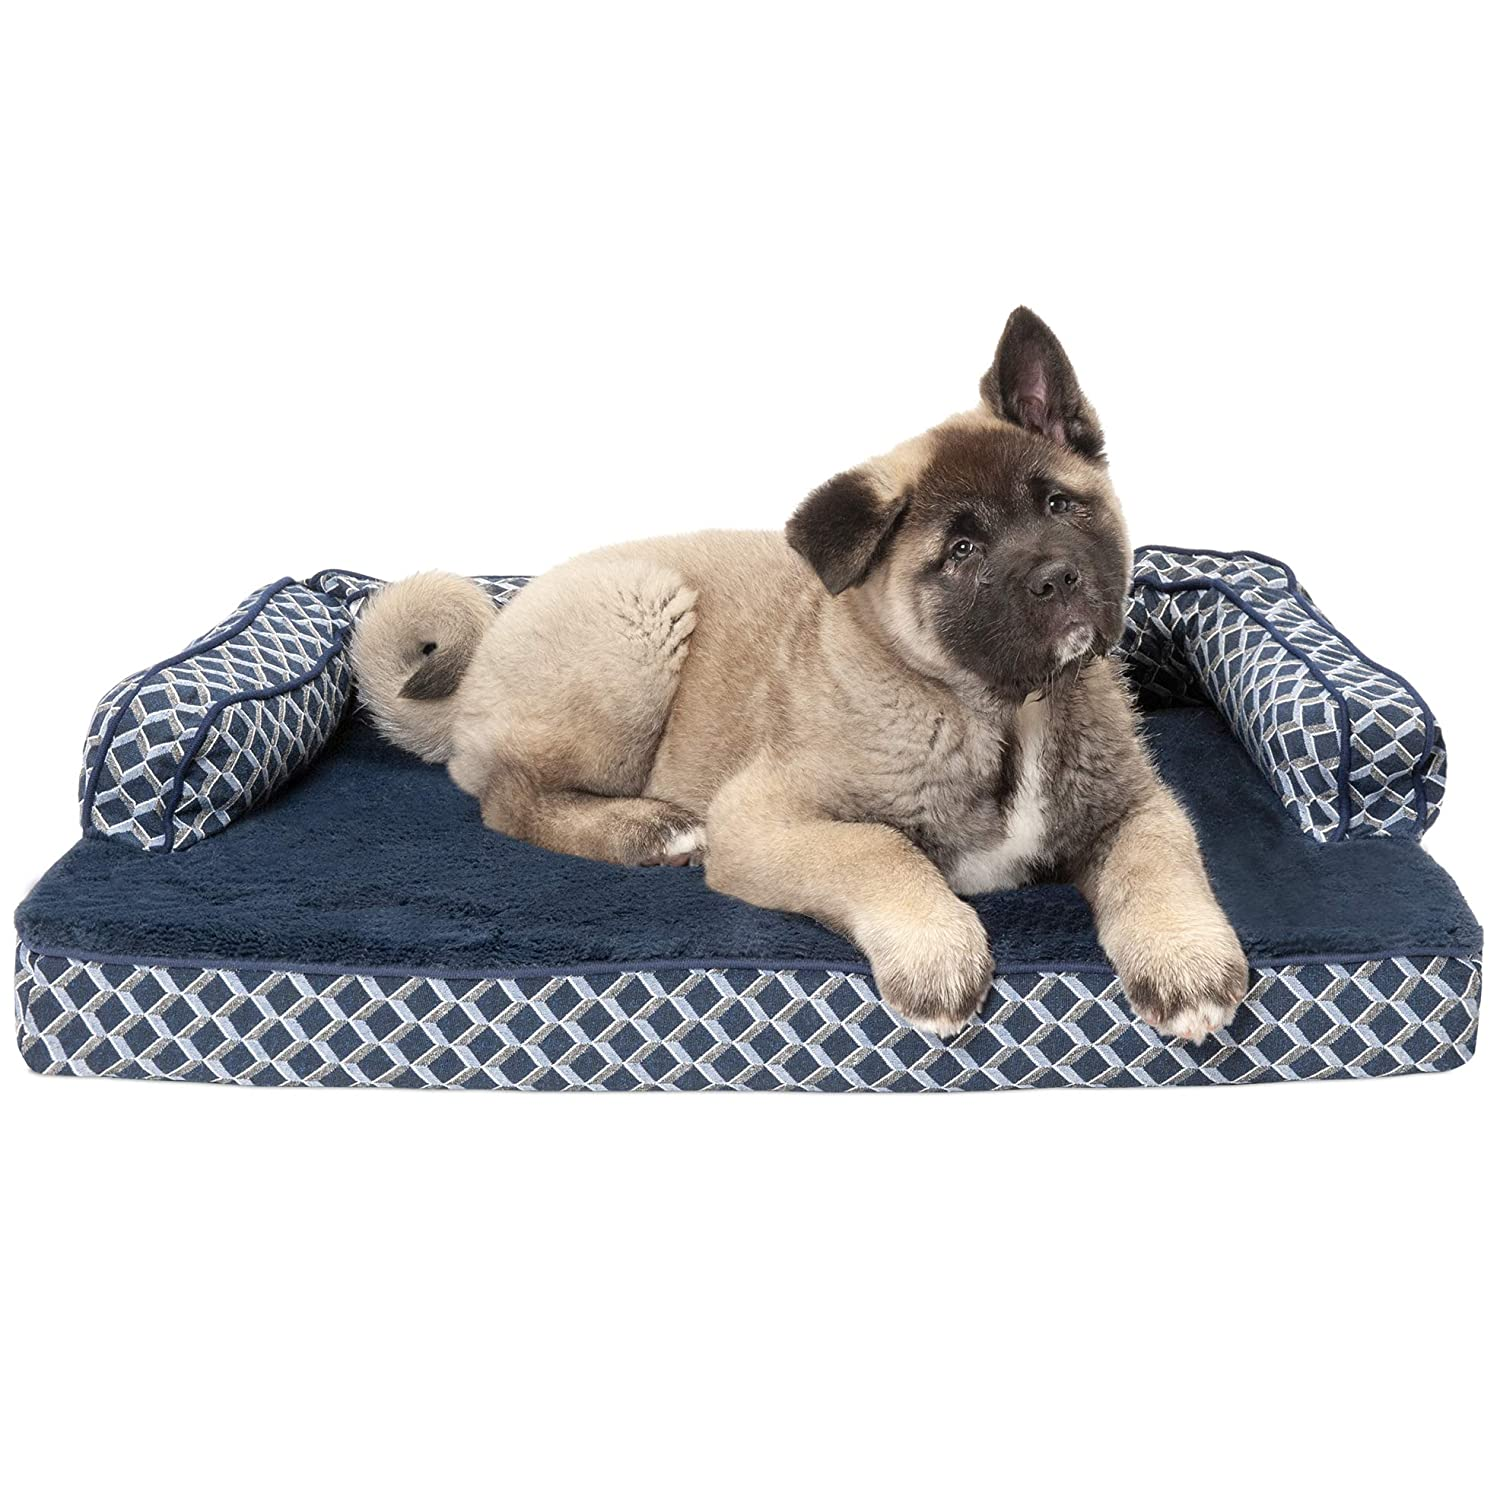 FurHaven Pet Dog Bed   Cooling Gel Memory Foam Orthopedic Plush & Decor Comfy Couch Pet Bed for Dogs & Cats, Diamond bluee, Medium